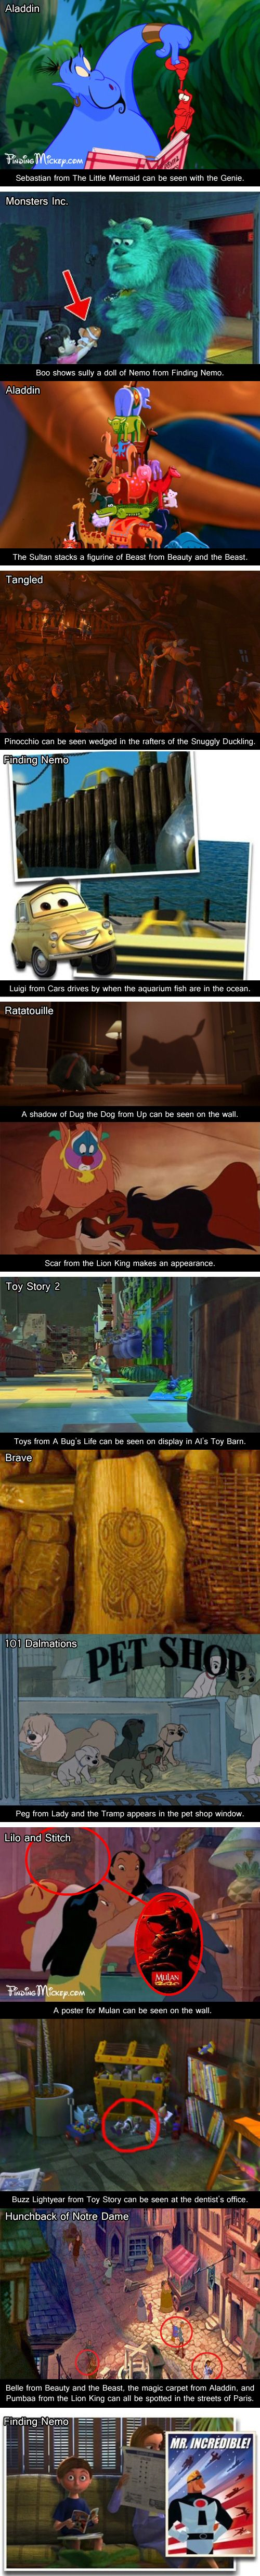 Disney Movies Hidden in Other Disney Movies http://geekxgirls.com/article.php?ID=3576